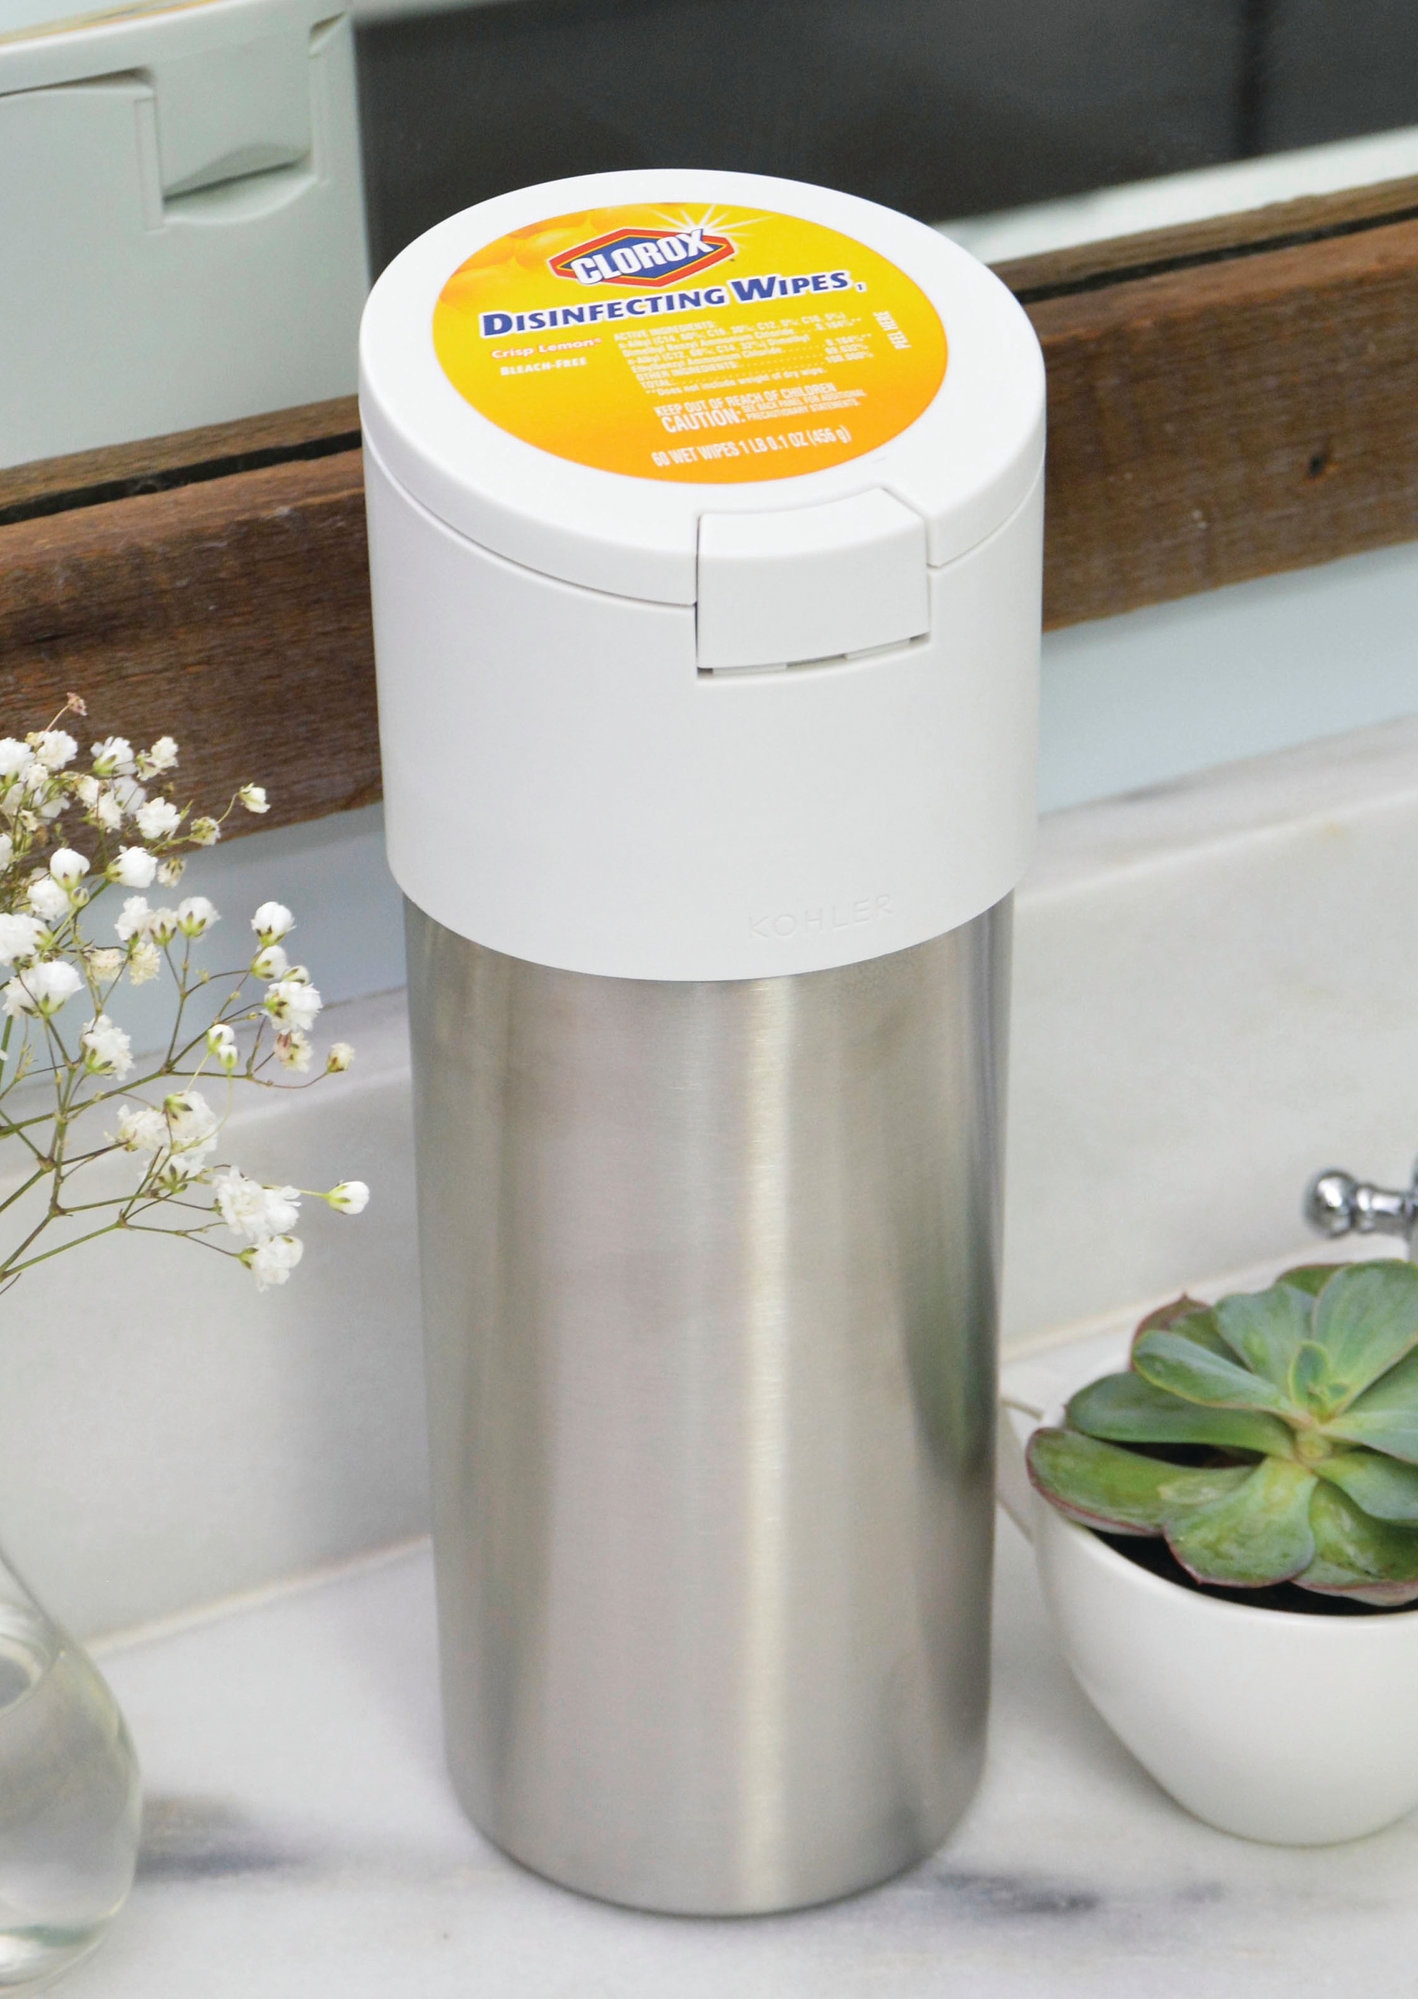 Seen is Clorox's stainless steel wipe container designed   for use   with Loop.